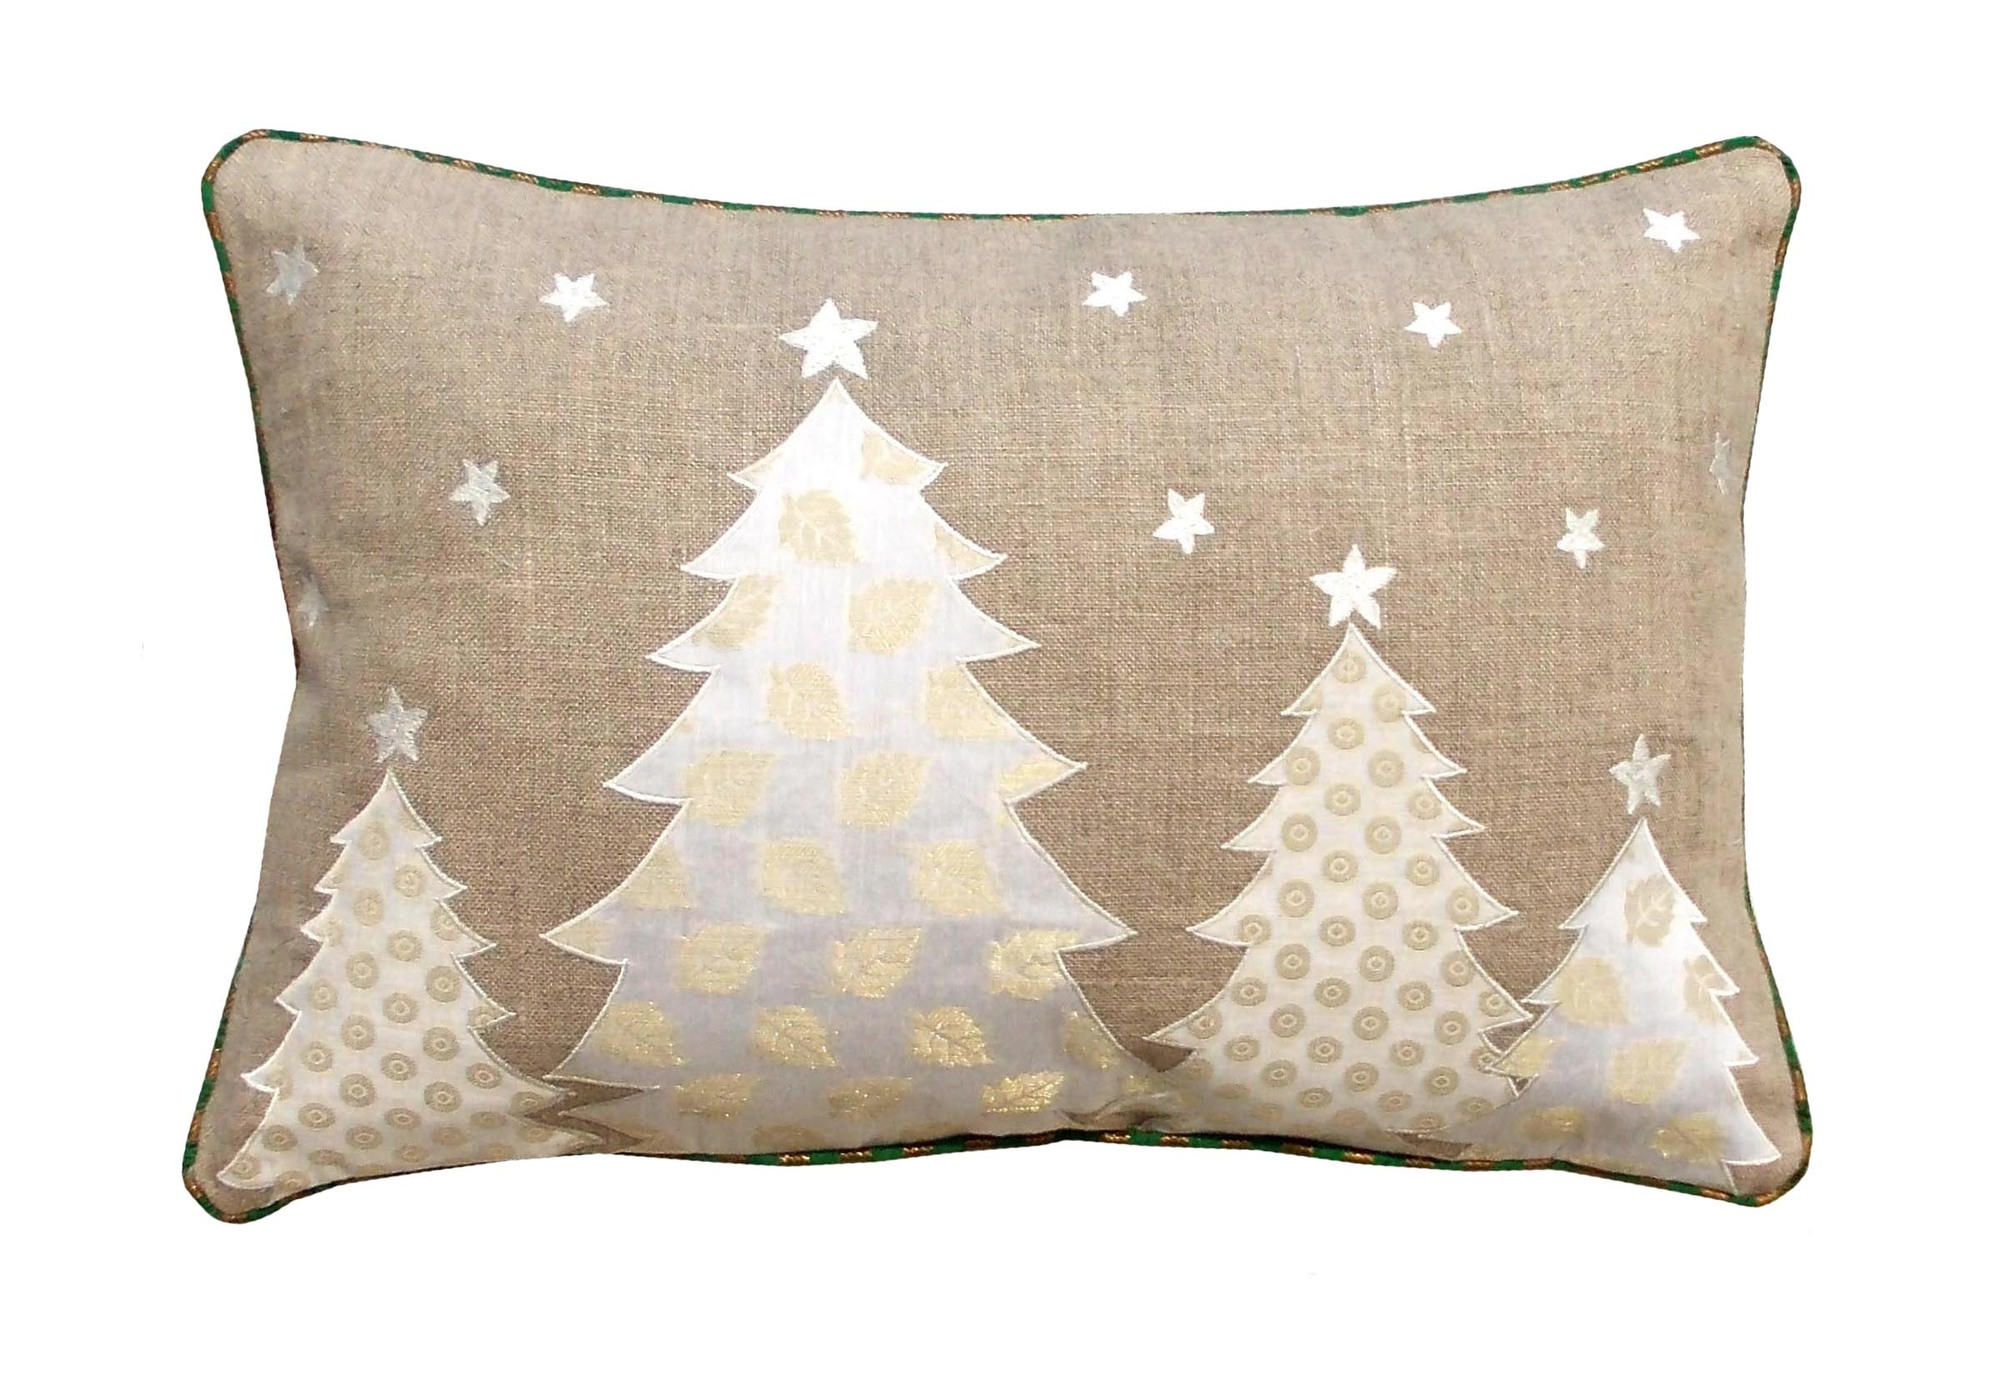 Christmas Tree Linen Cushion Cover by V Living on DaWanda.com - DaWanda – en.dawanda.com – AU $23.71